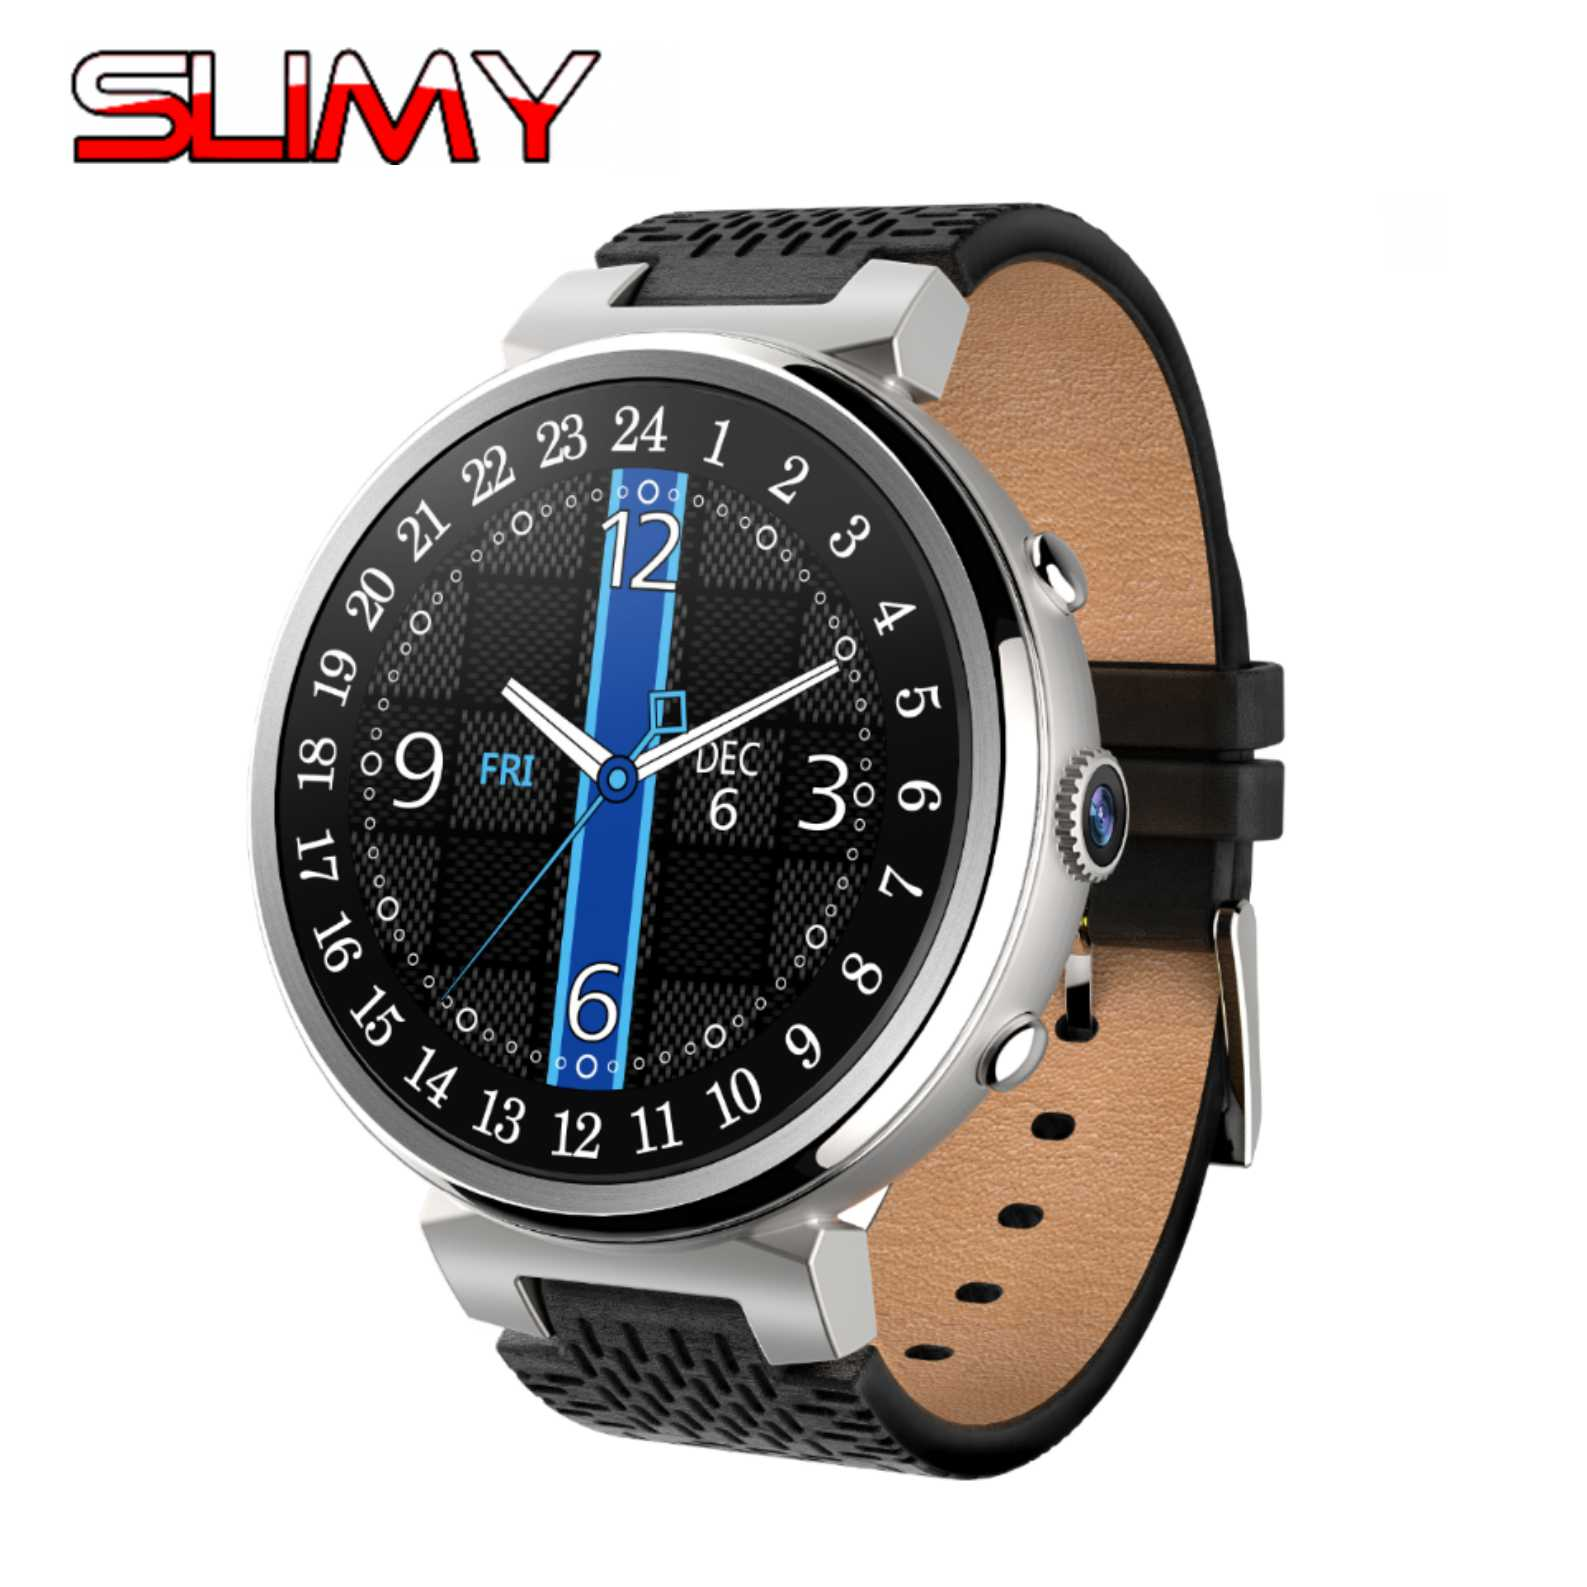 Slimy I6 Smart Watch Android 5.1 OS 1.39 Screen 2GBB+16GB Smartwatch Support SIM Card GPS WiFi Call Reminder Heart Rate Camera smart baby watch q60s детские часы с gps голубые